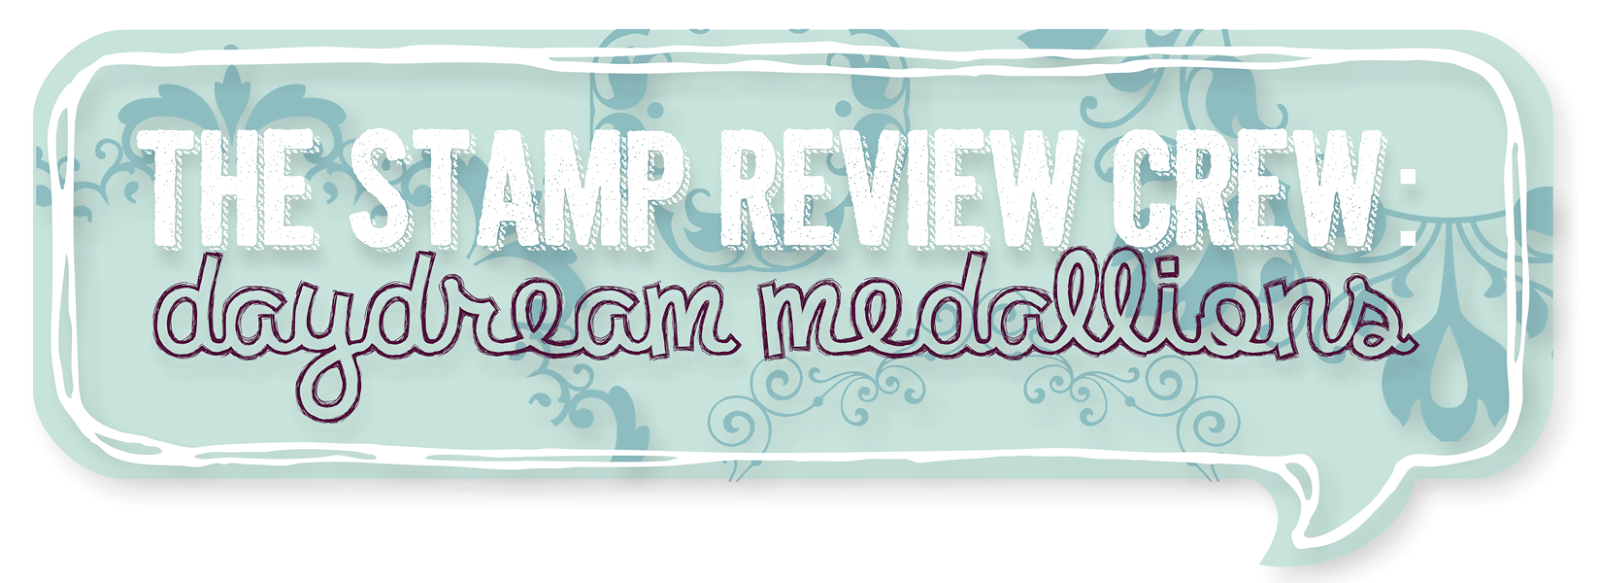 http://stampreviewcrew.blogspot.com/2014/08/stamp-review-crew-daydream-medallions.html